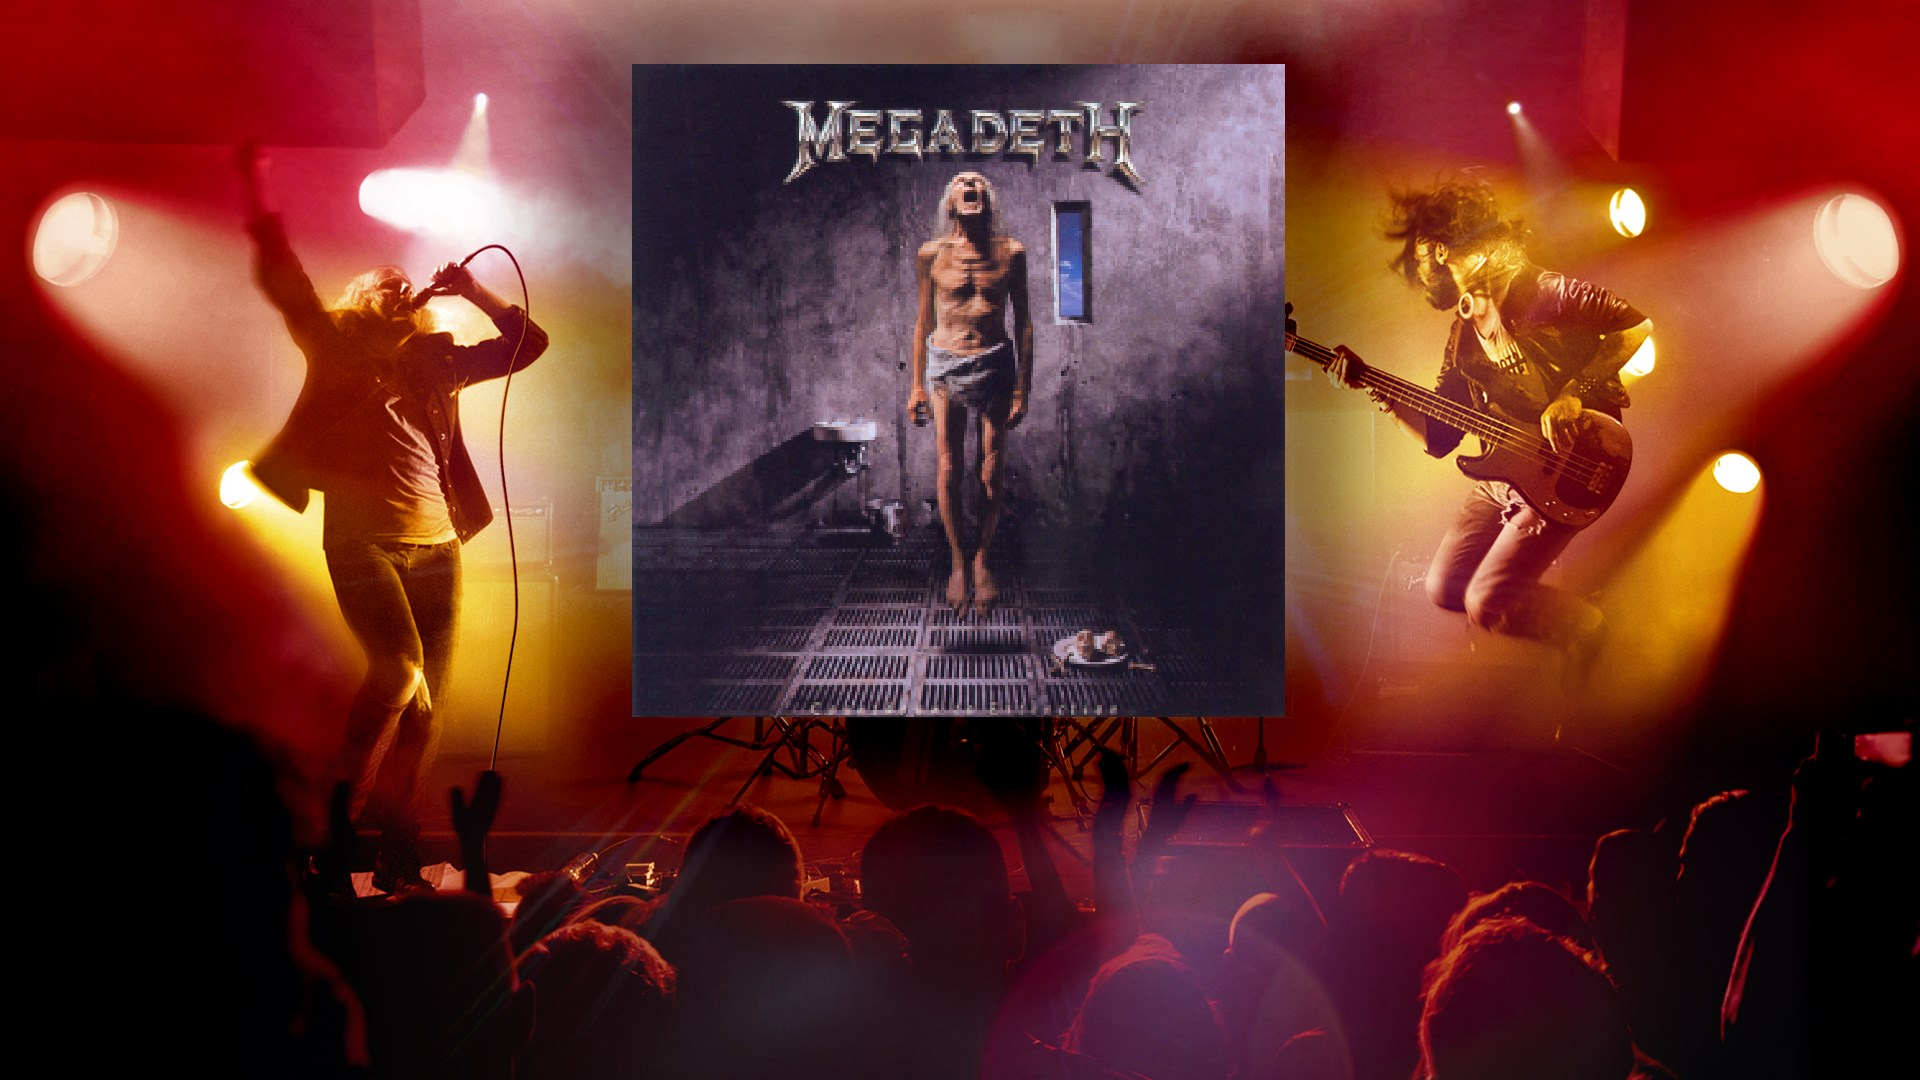 """Symphony of Destruction"" - Megadeth"